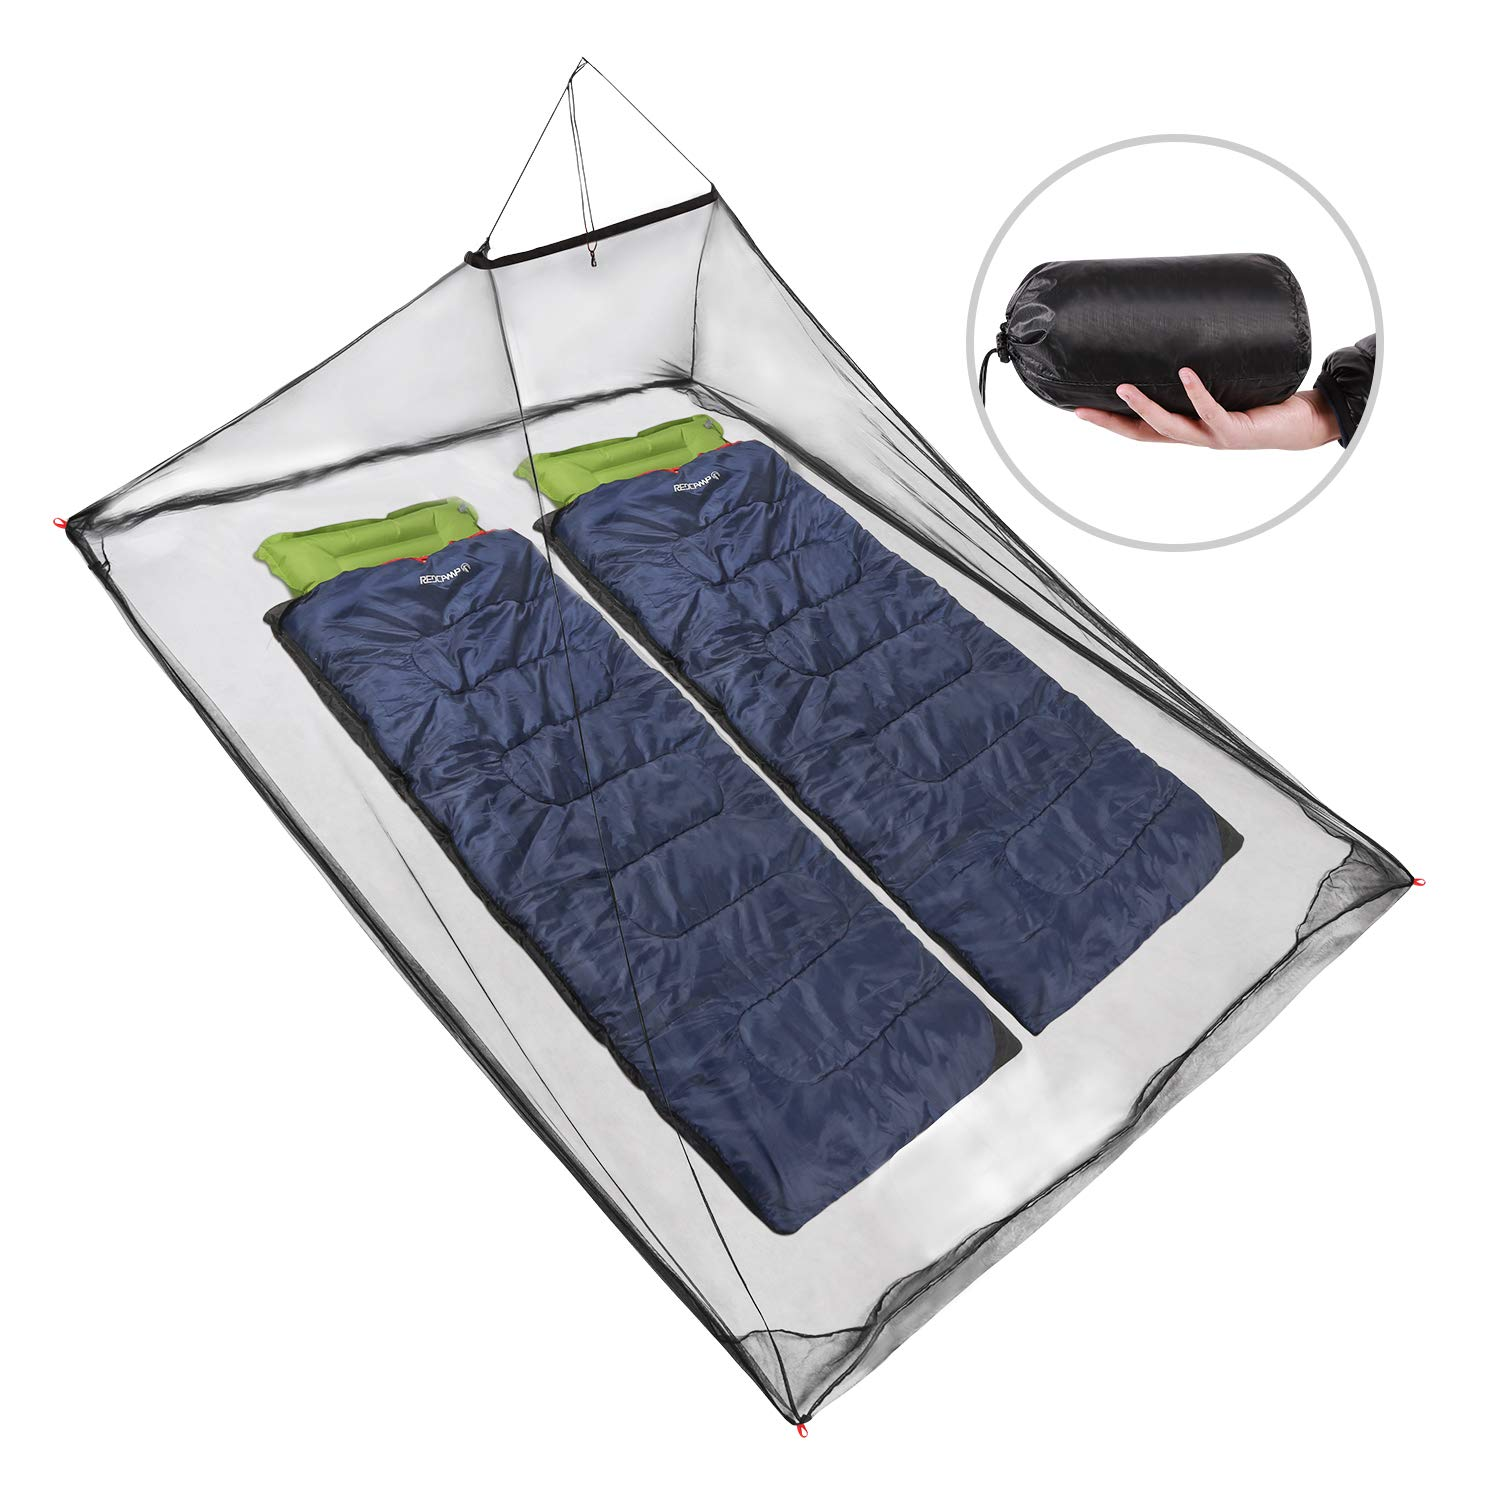 REDCAMP Double Camping Mosquito Net for Sleeping Bag or Bed, Compact and Lightweight Hanging Triangle Pyramid Net, Black by REDCAMP